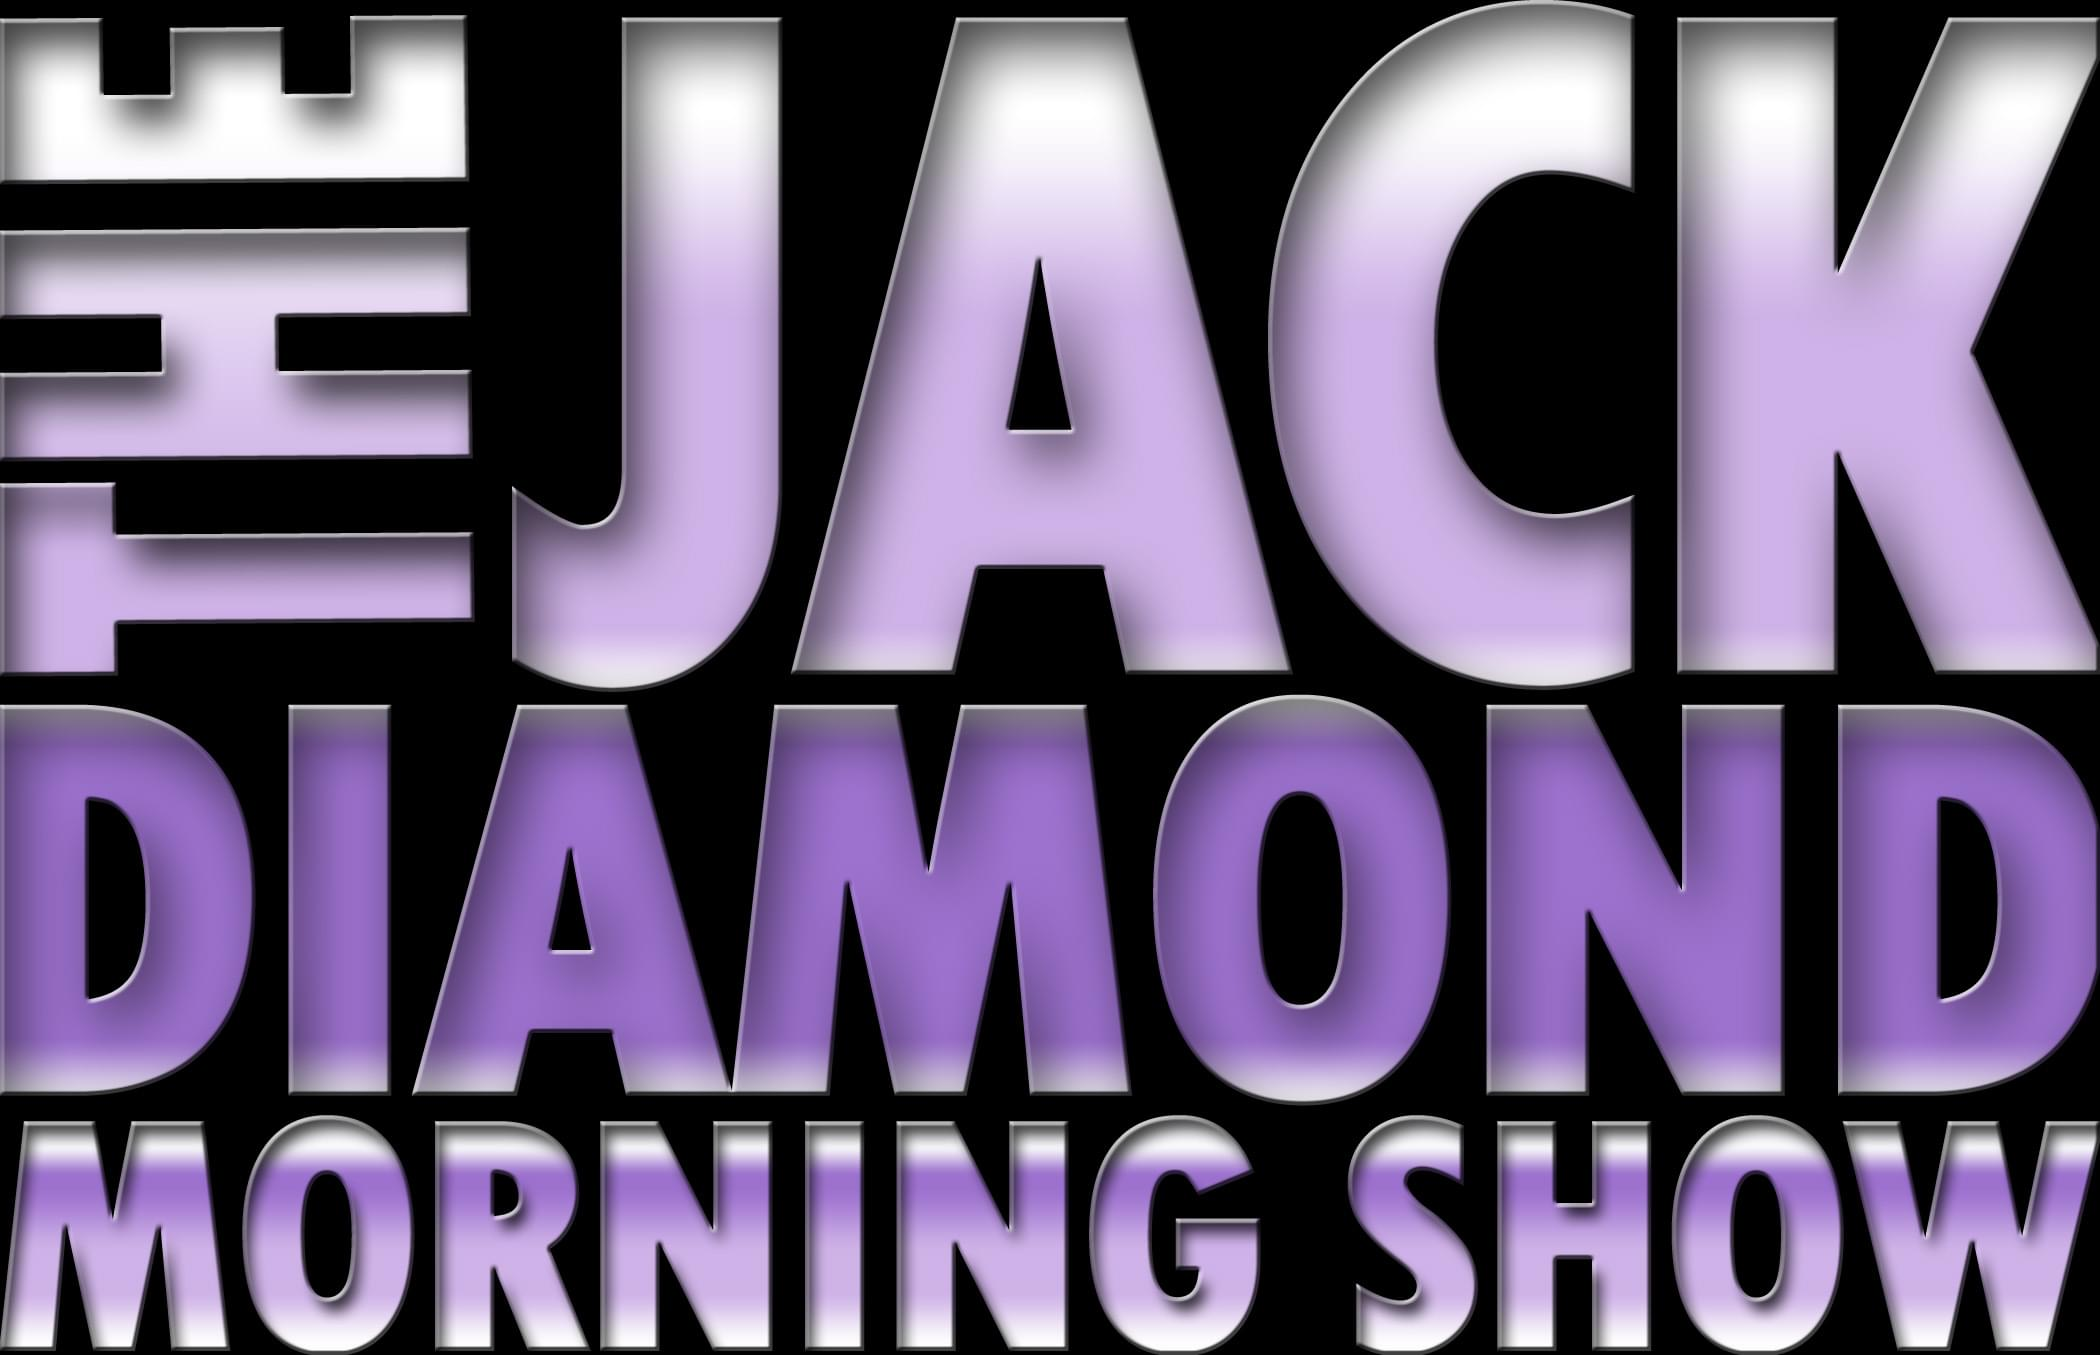 Listen to The Jack Diamond Morning Show (03–07-2019) The Show, the whole show, and nothing but the show!